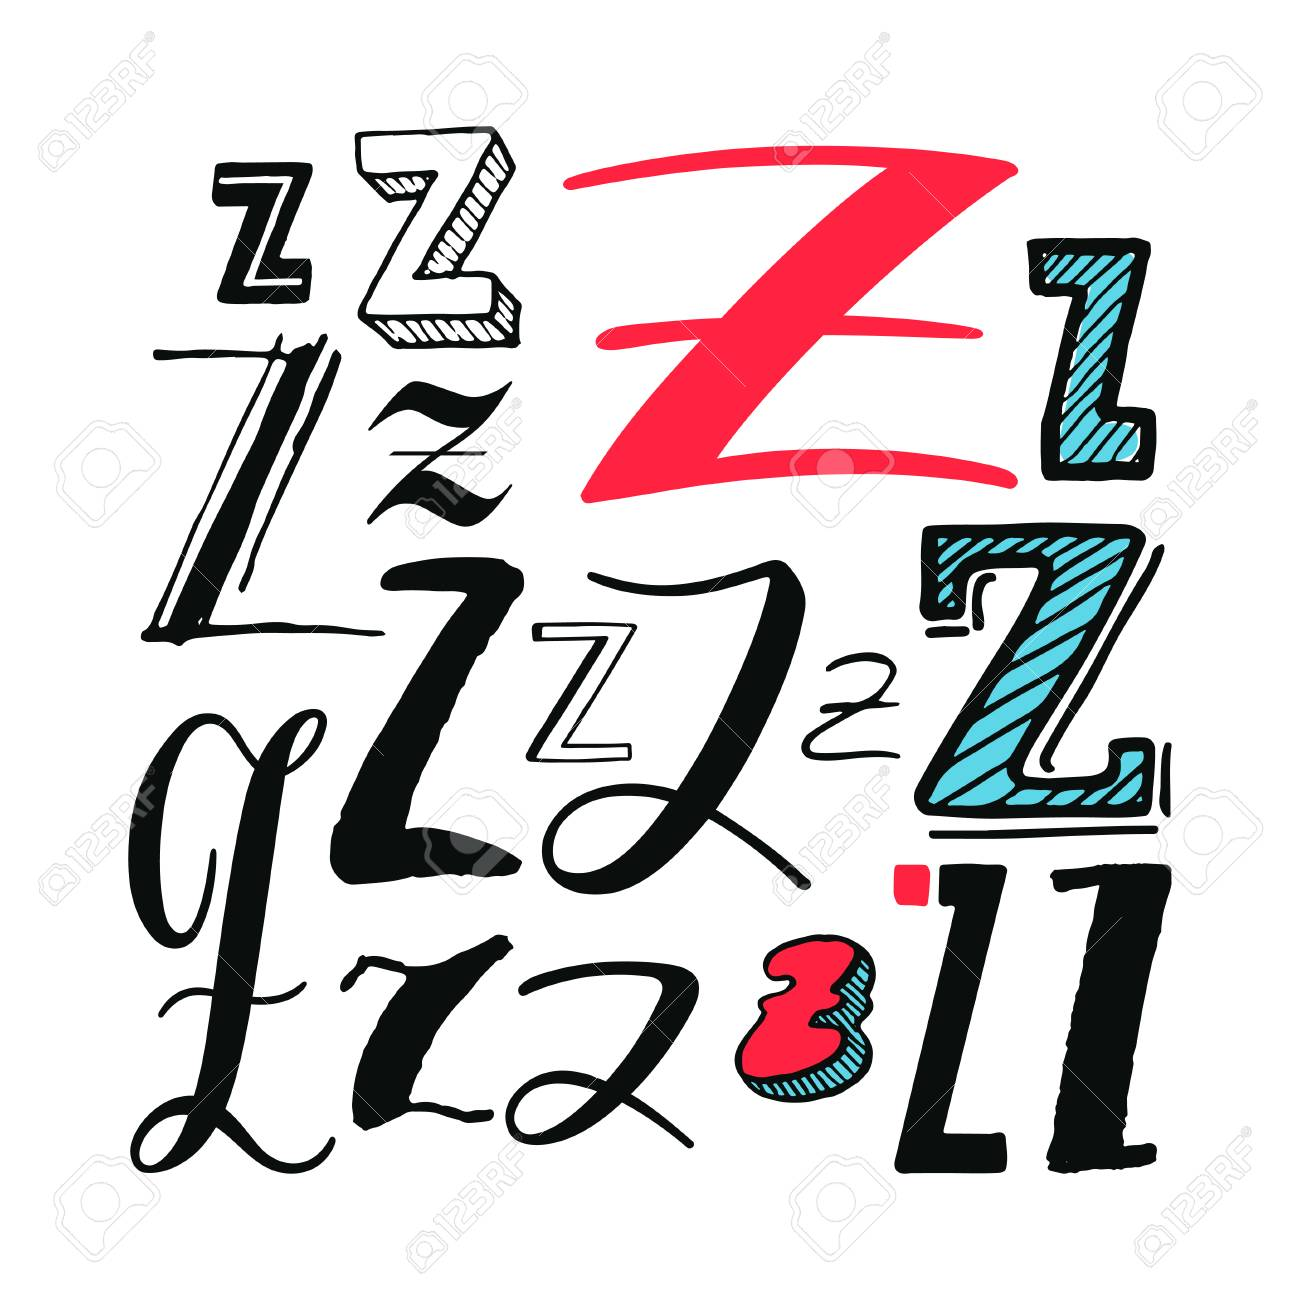 Letter Z Set Different Styles Hand Drawn Illustration Royalty